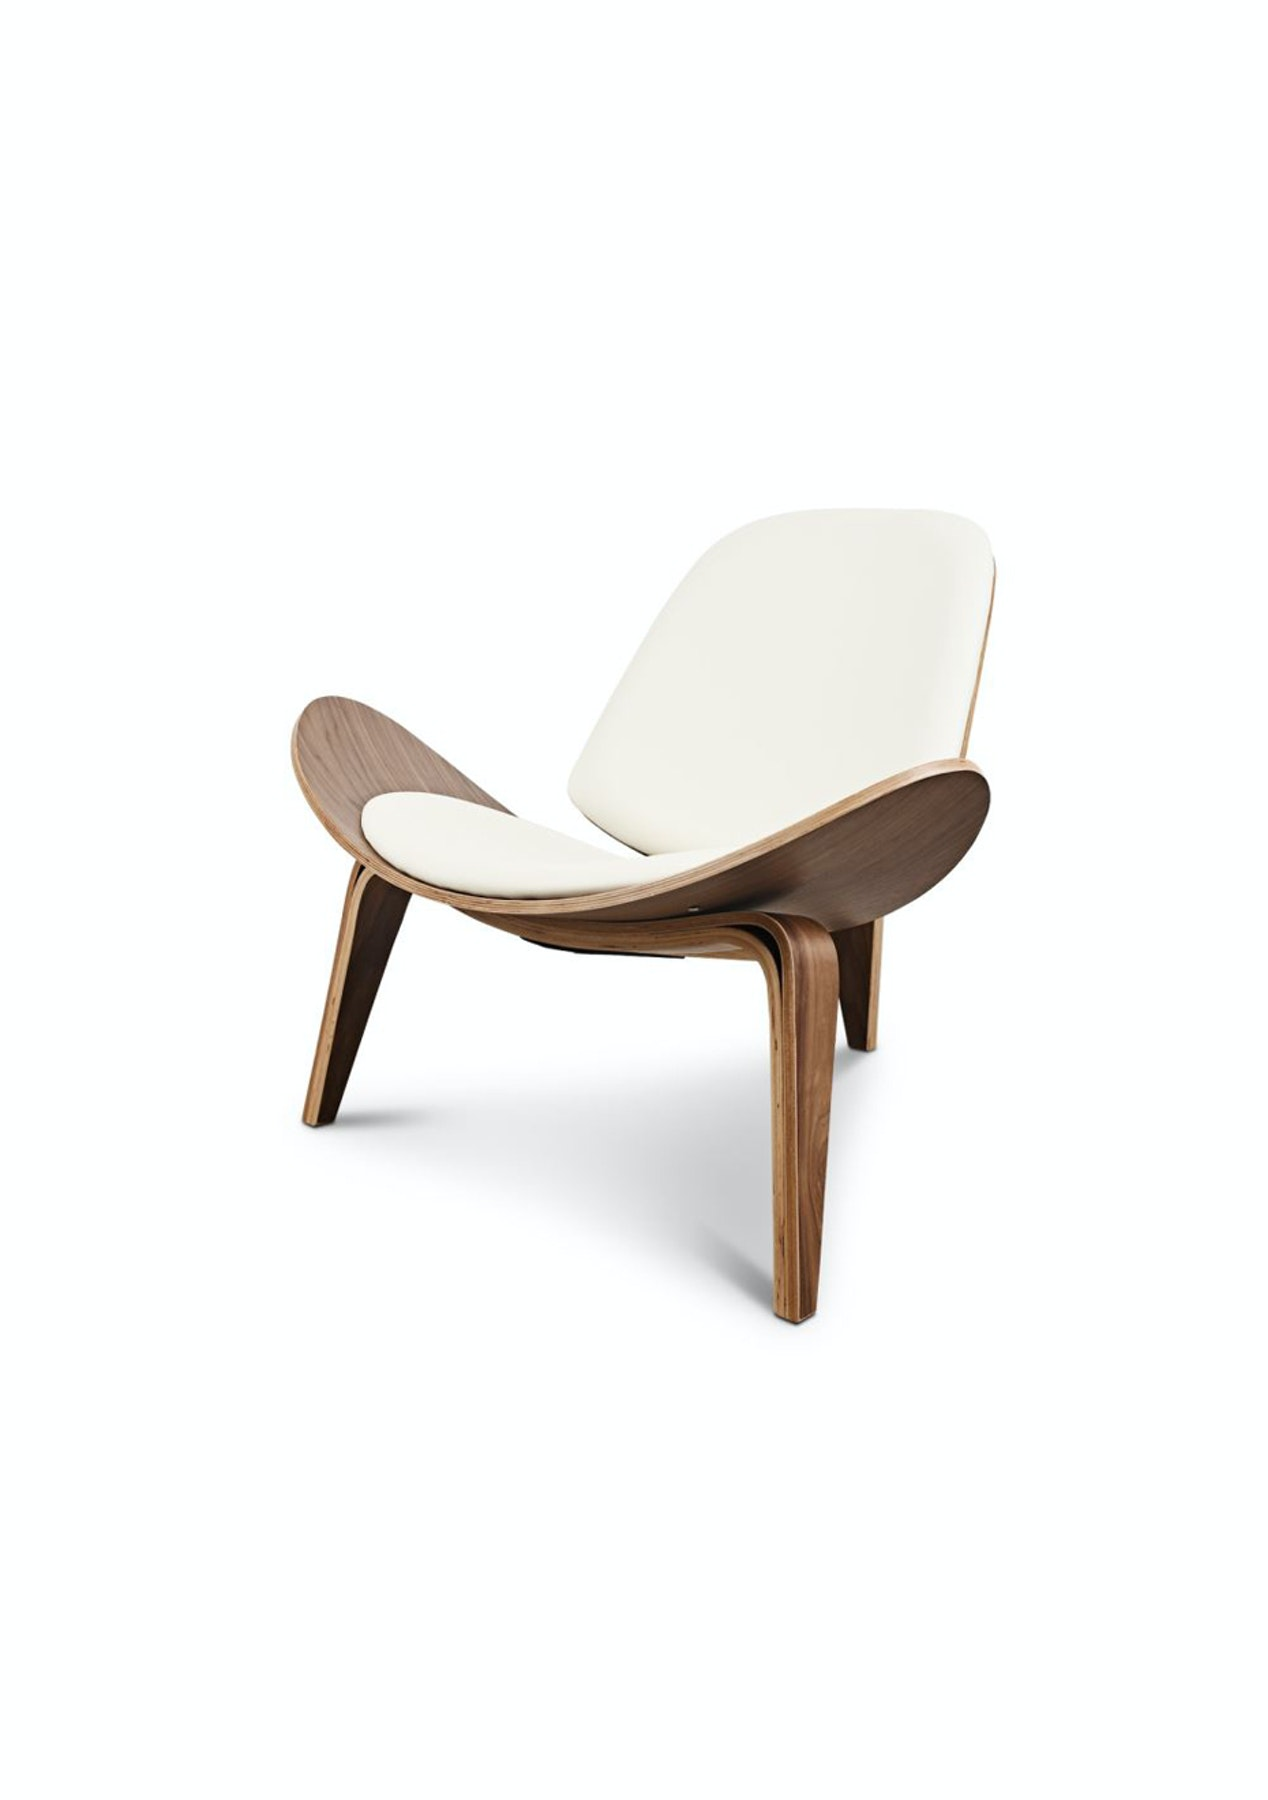 16 shell chair replica hans wegner ch07 lounge chair inspired by hans j wegner replica - Shell chair replica ...